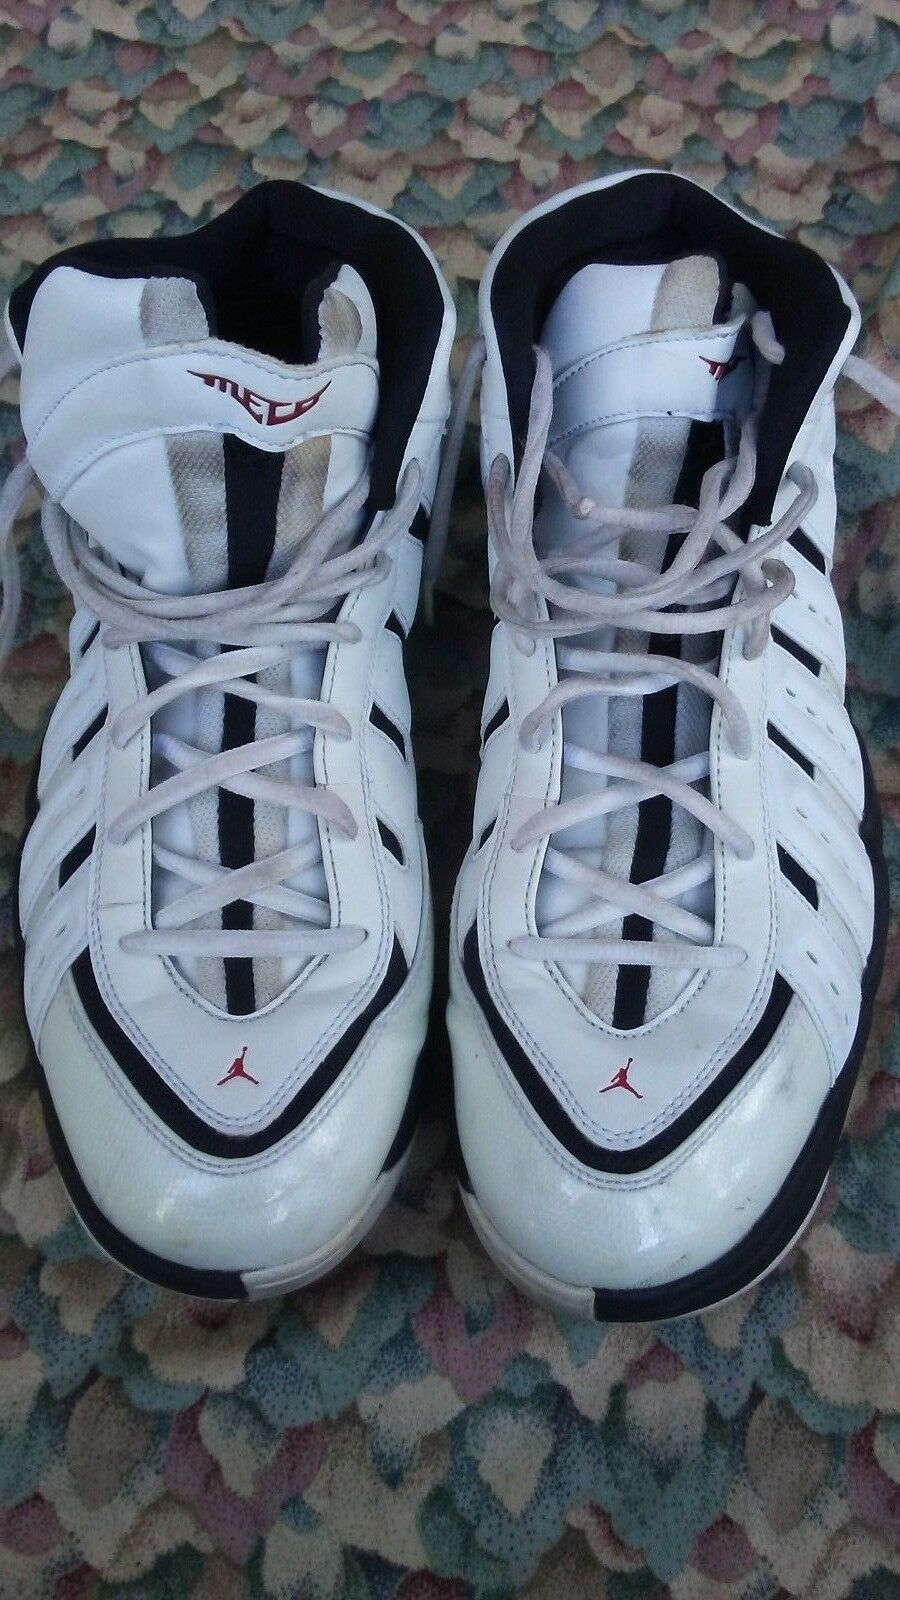 Jordan Melo M7  White Red Black Sneakers Shoes 414843-102 Size 12